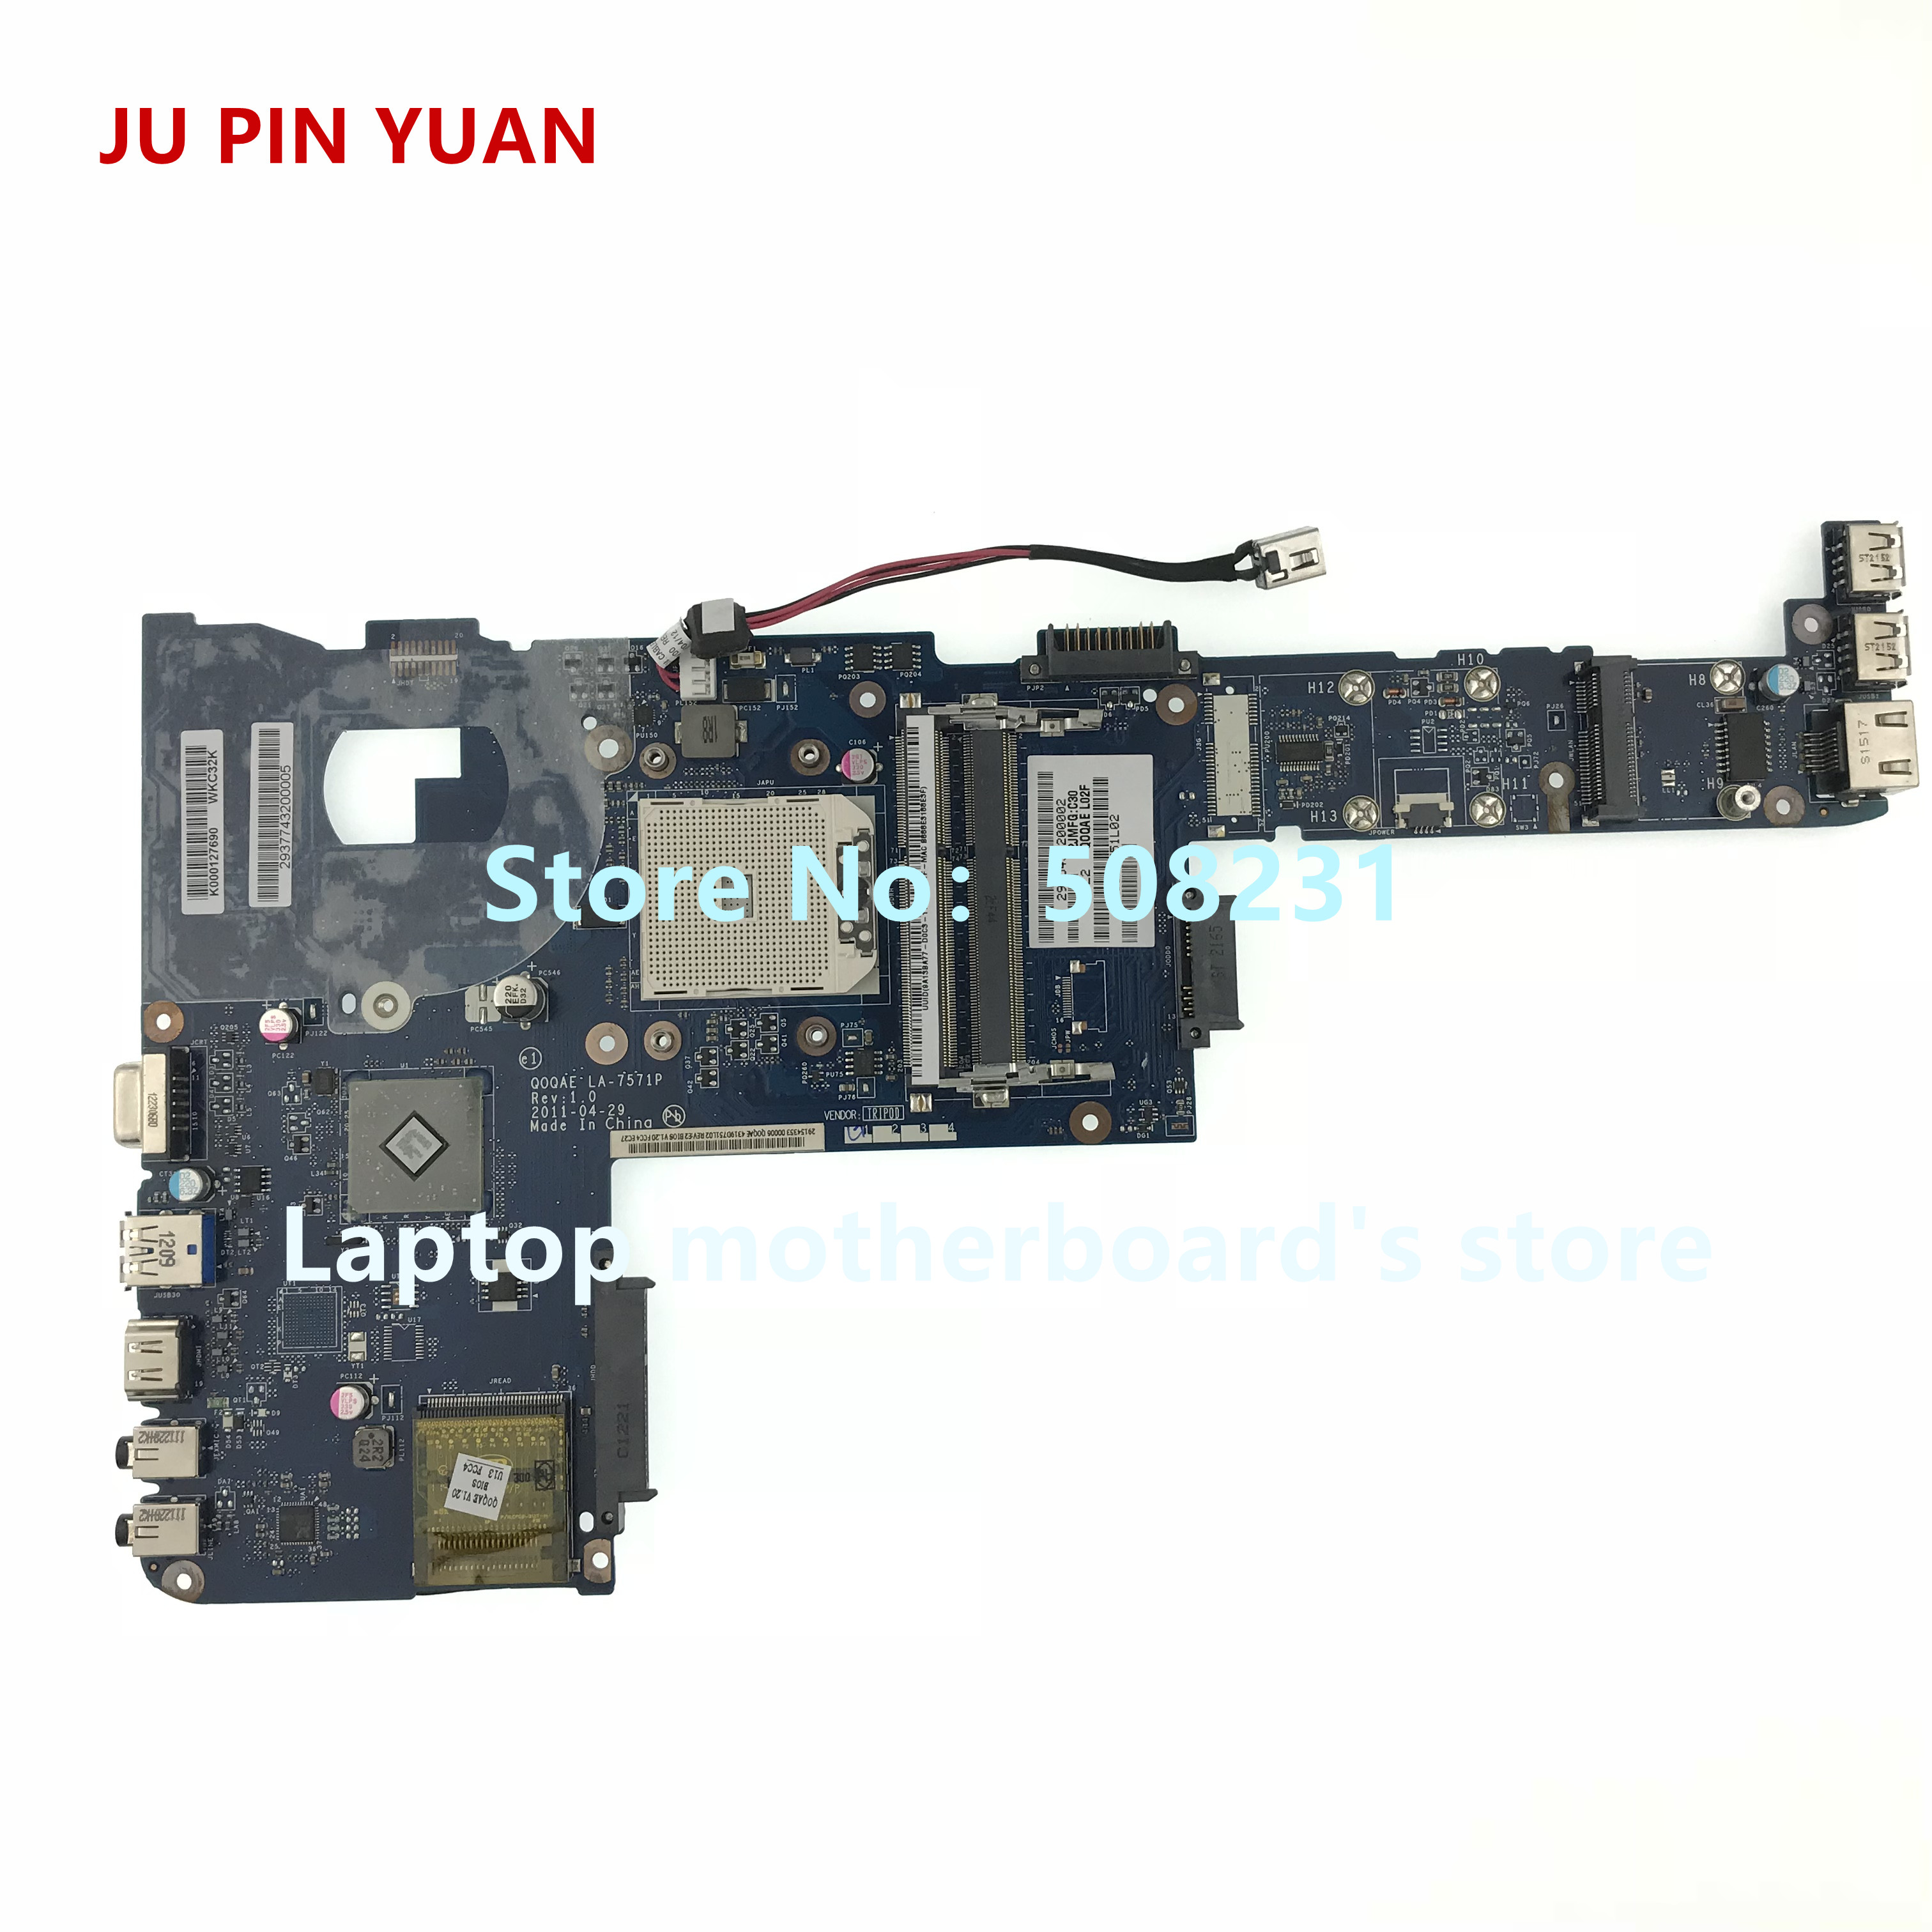 JU PIN YUAN LA-7571P K000127690 For Toshiba Satellite P740D P745D Laptop Motherboard